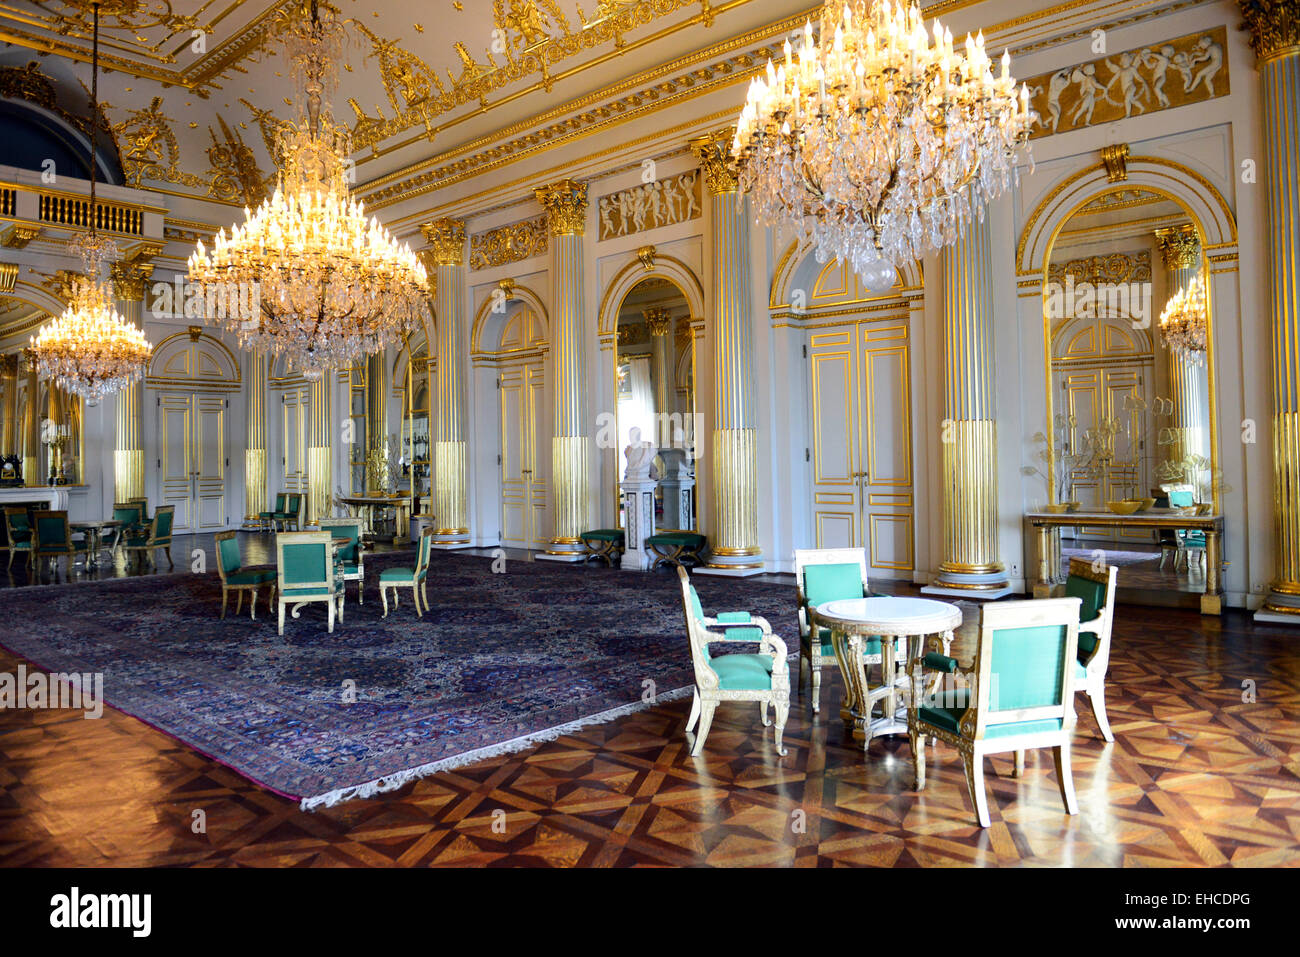 latest stock photo the beautiful interior halls and rooms of the royal palace in brussels with royal palace interior design - Royal Palace Interior Design